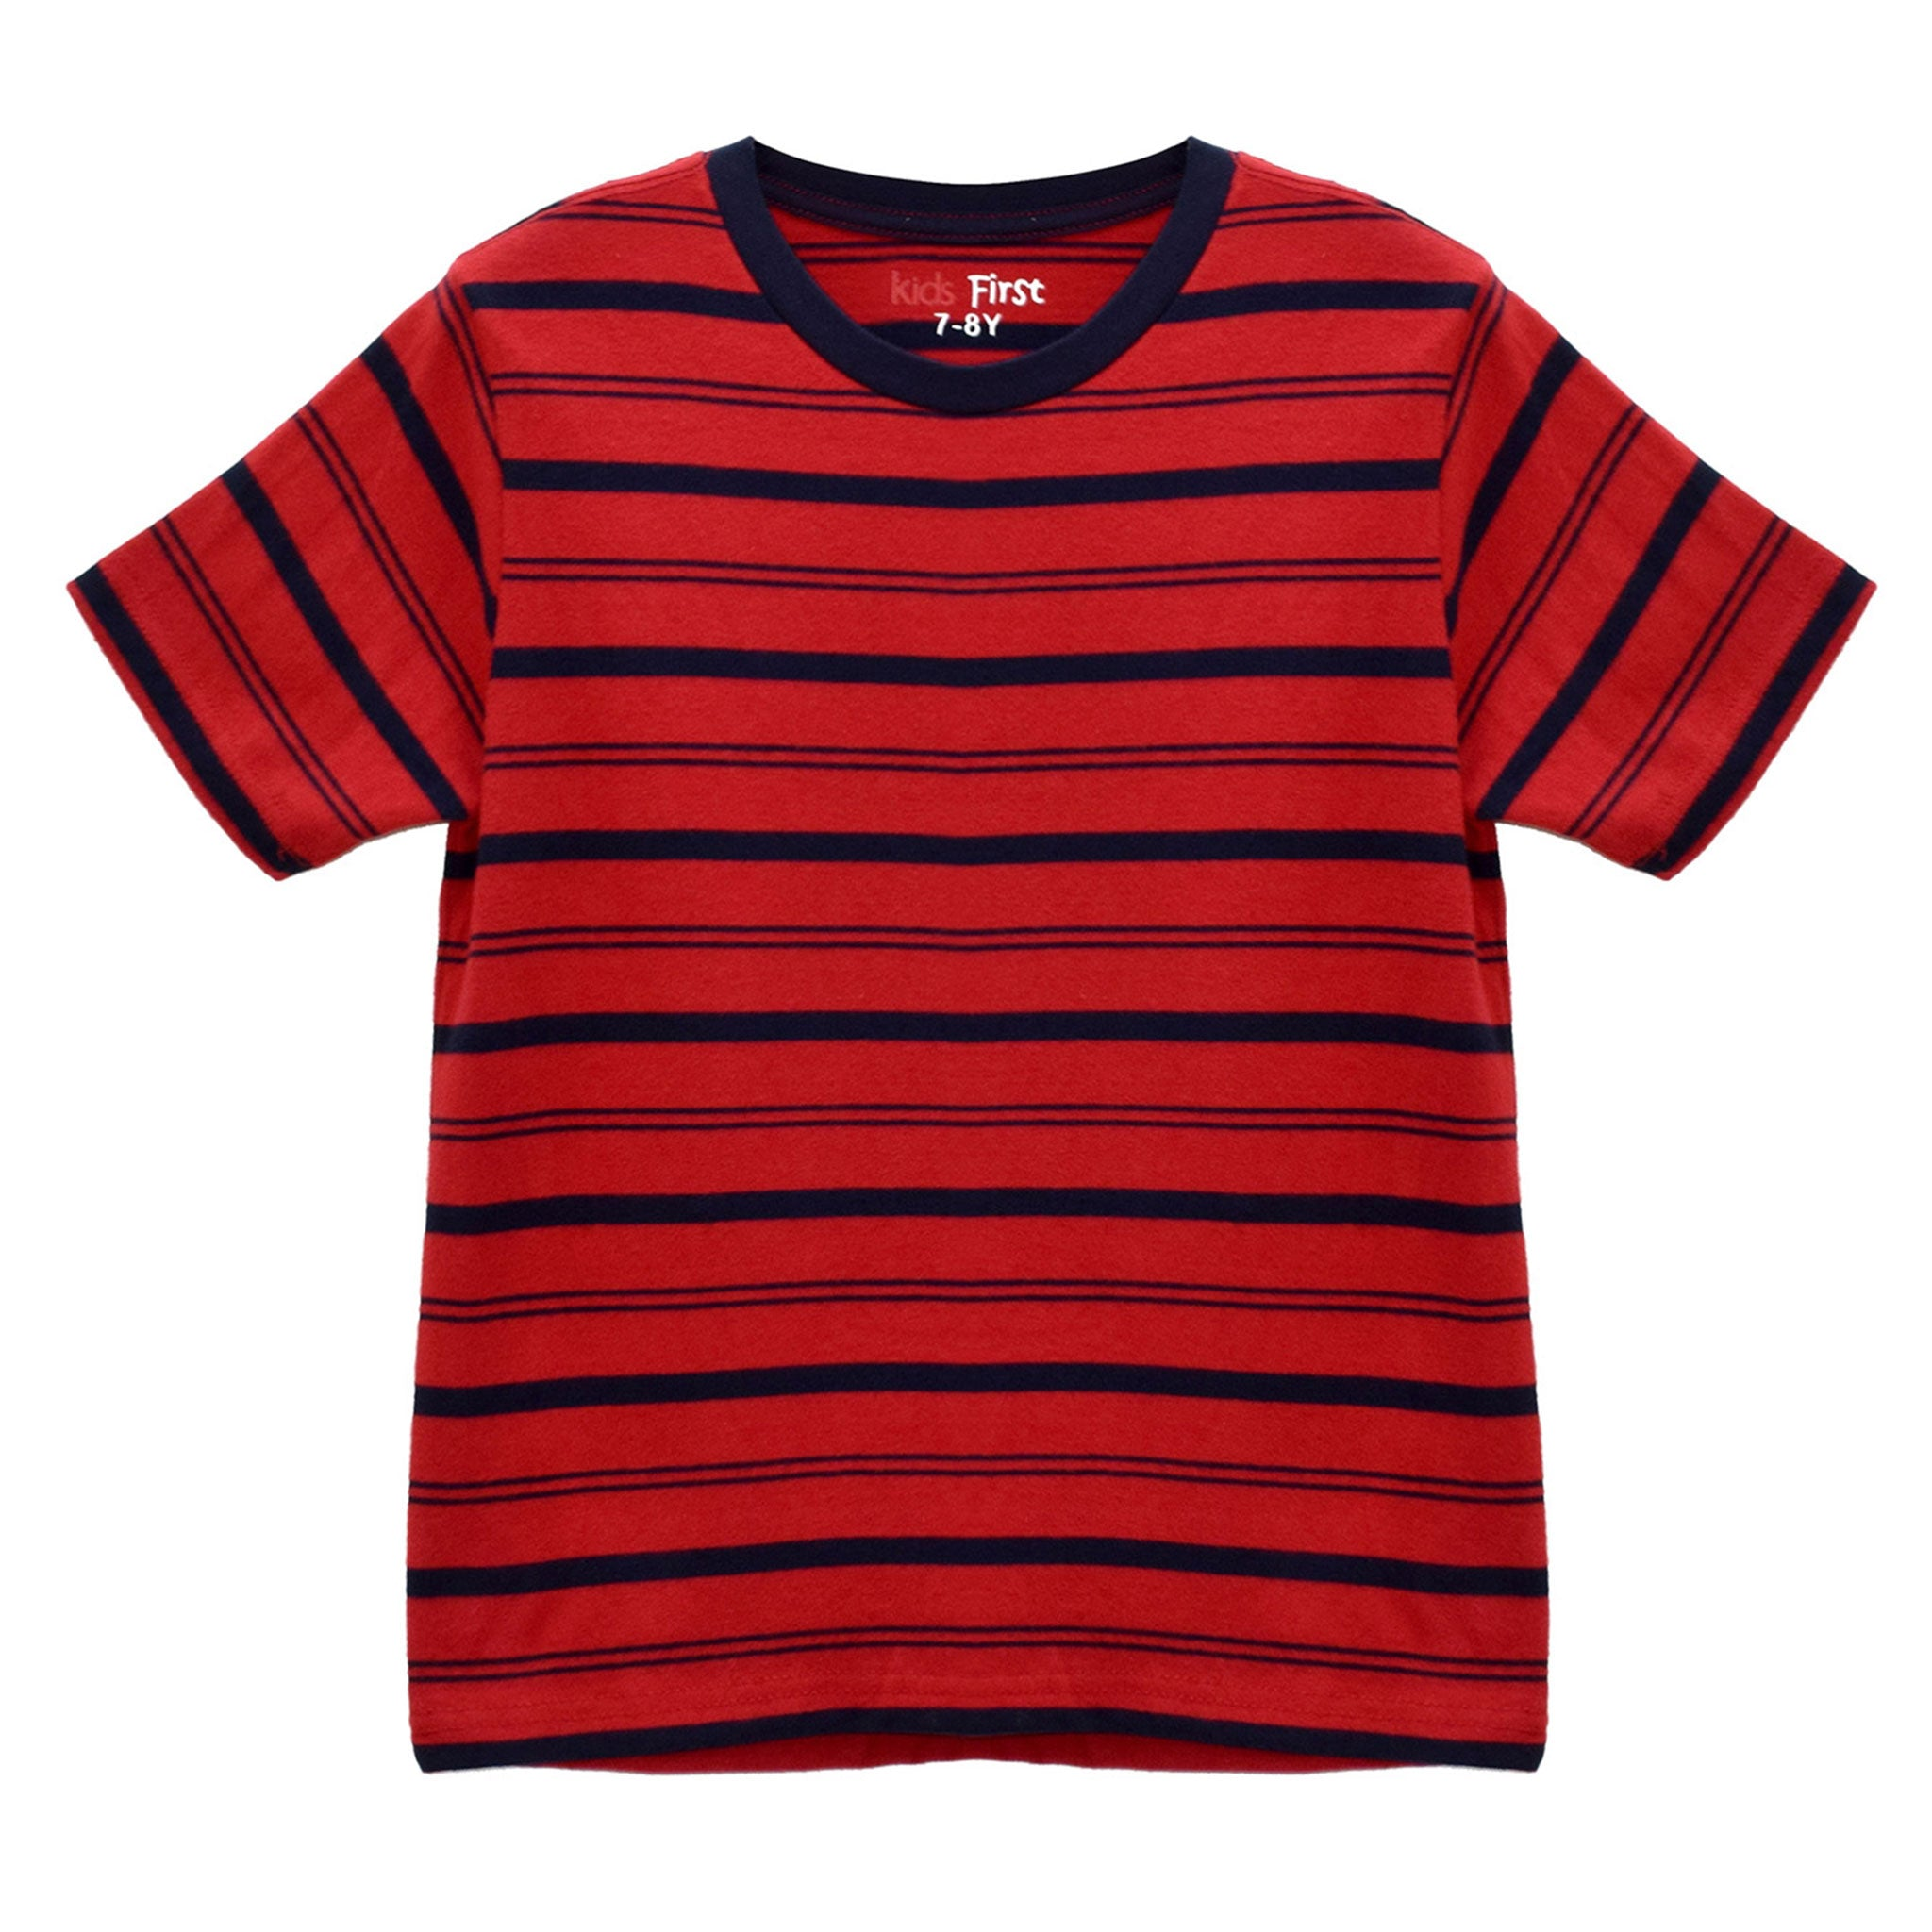 BOYS' S/S YD TEE - RED / DOUBLE NAVY